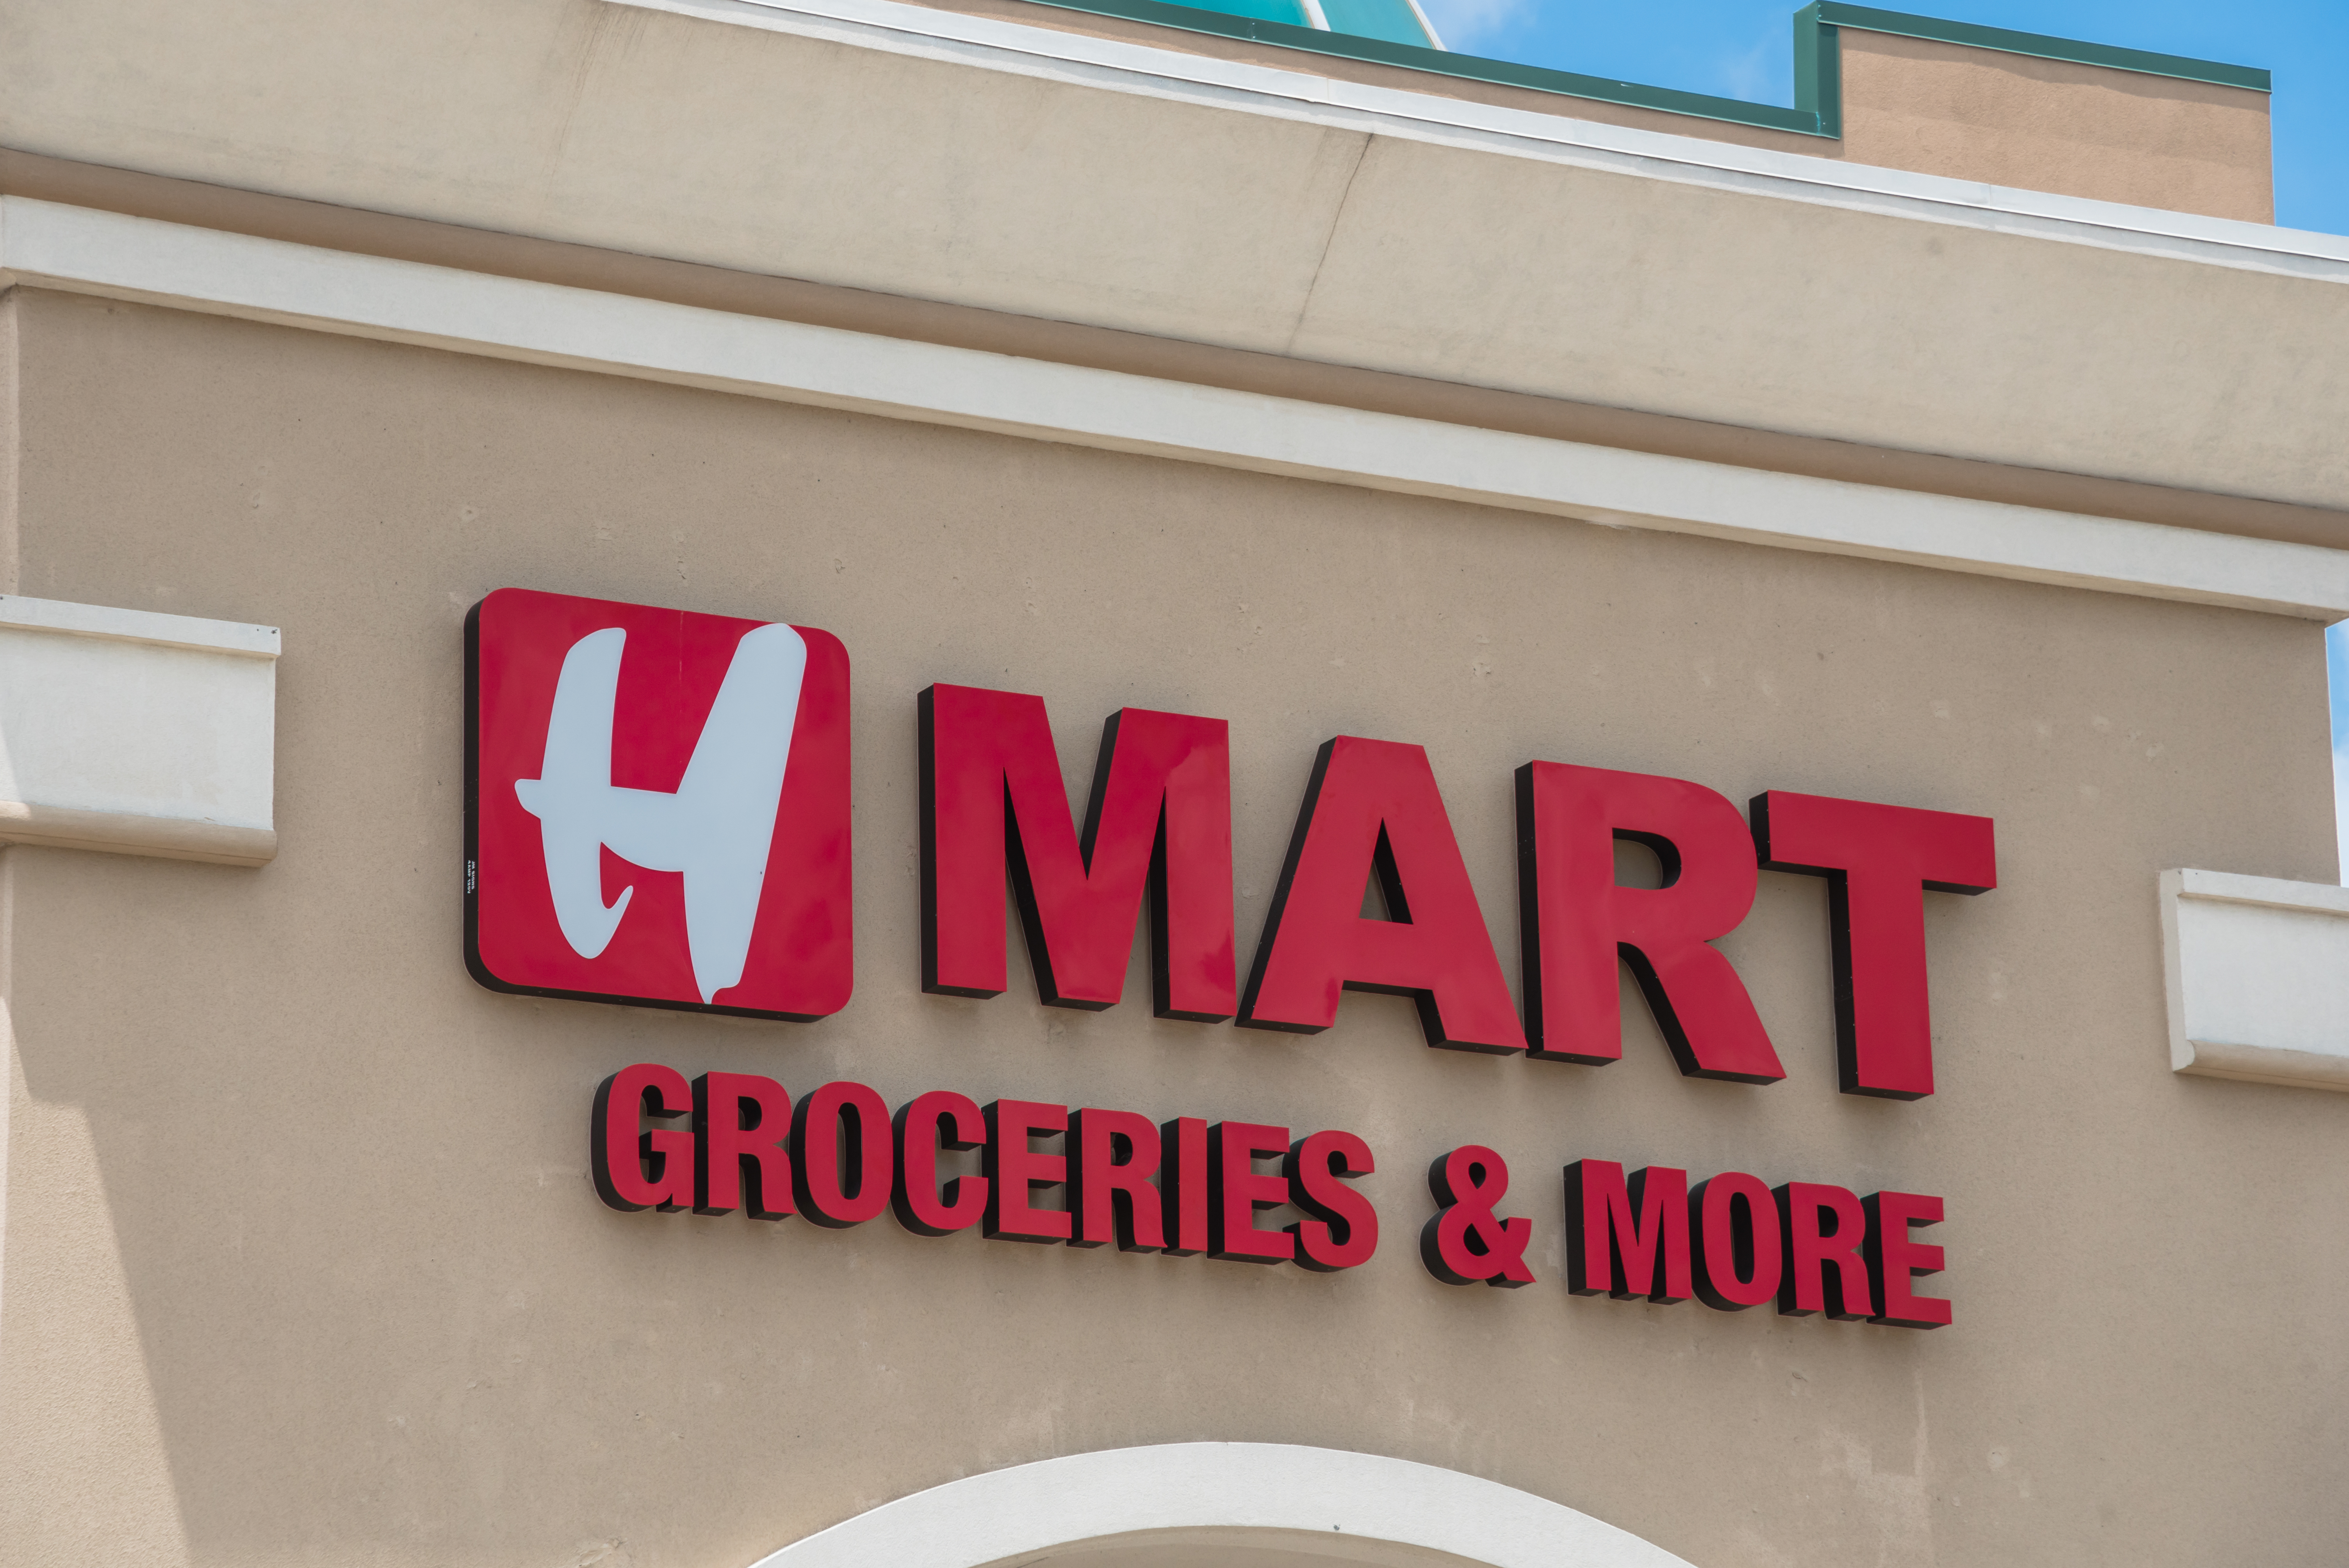 """A red sign says """"H Mart, groceries and more"""" on a beige facade, with the grocer's logo"""